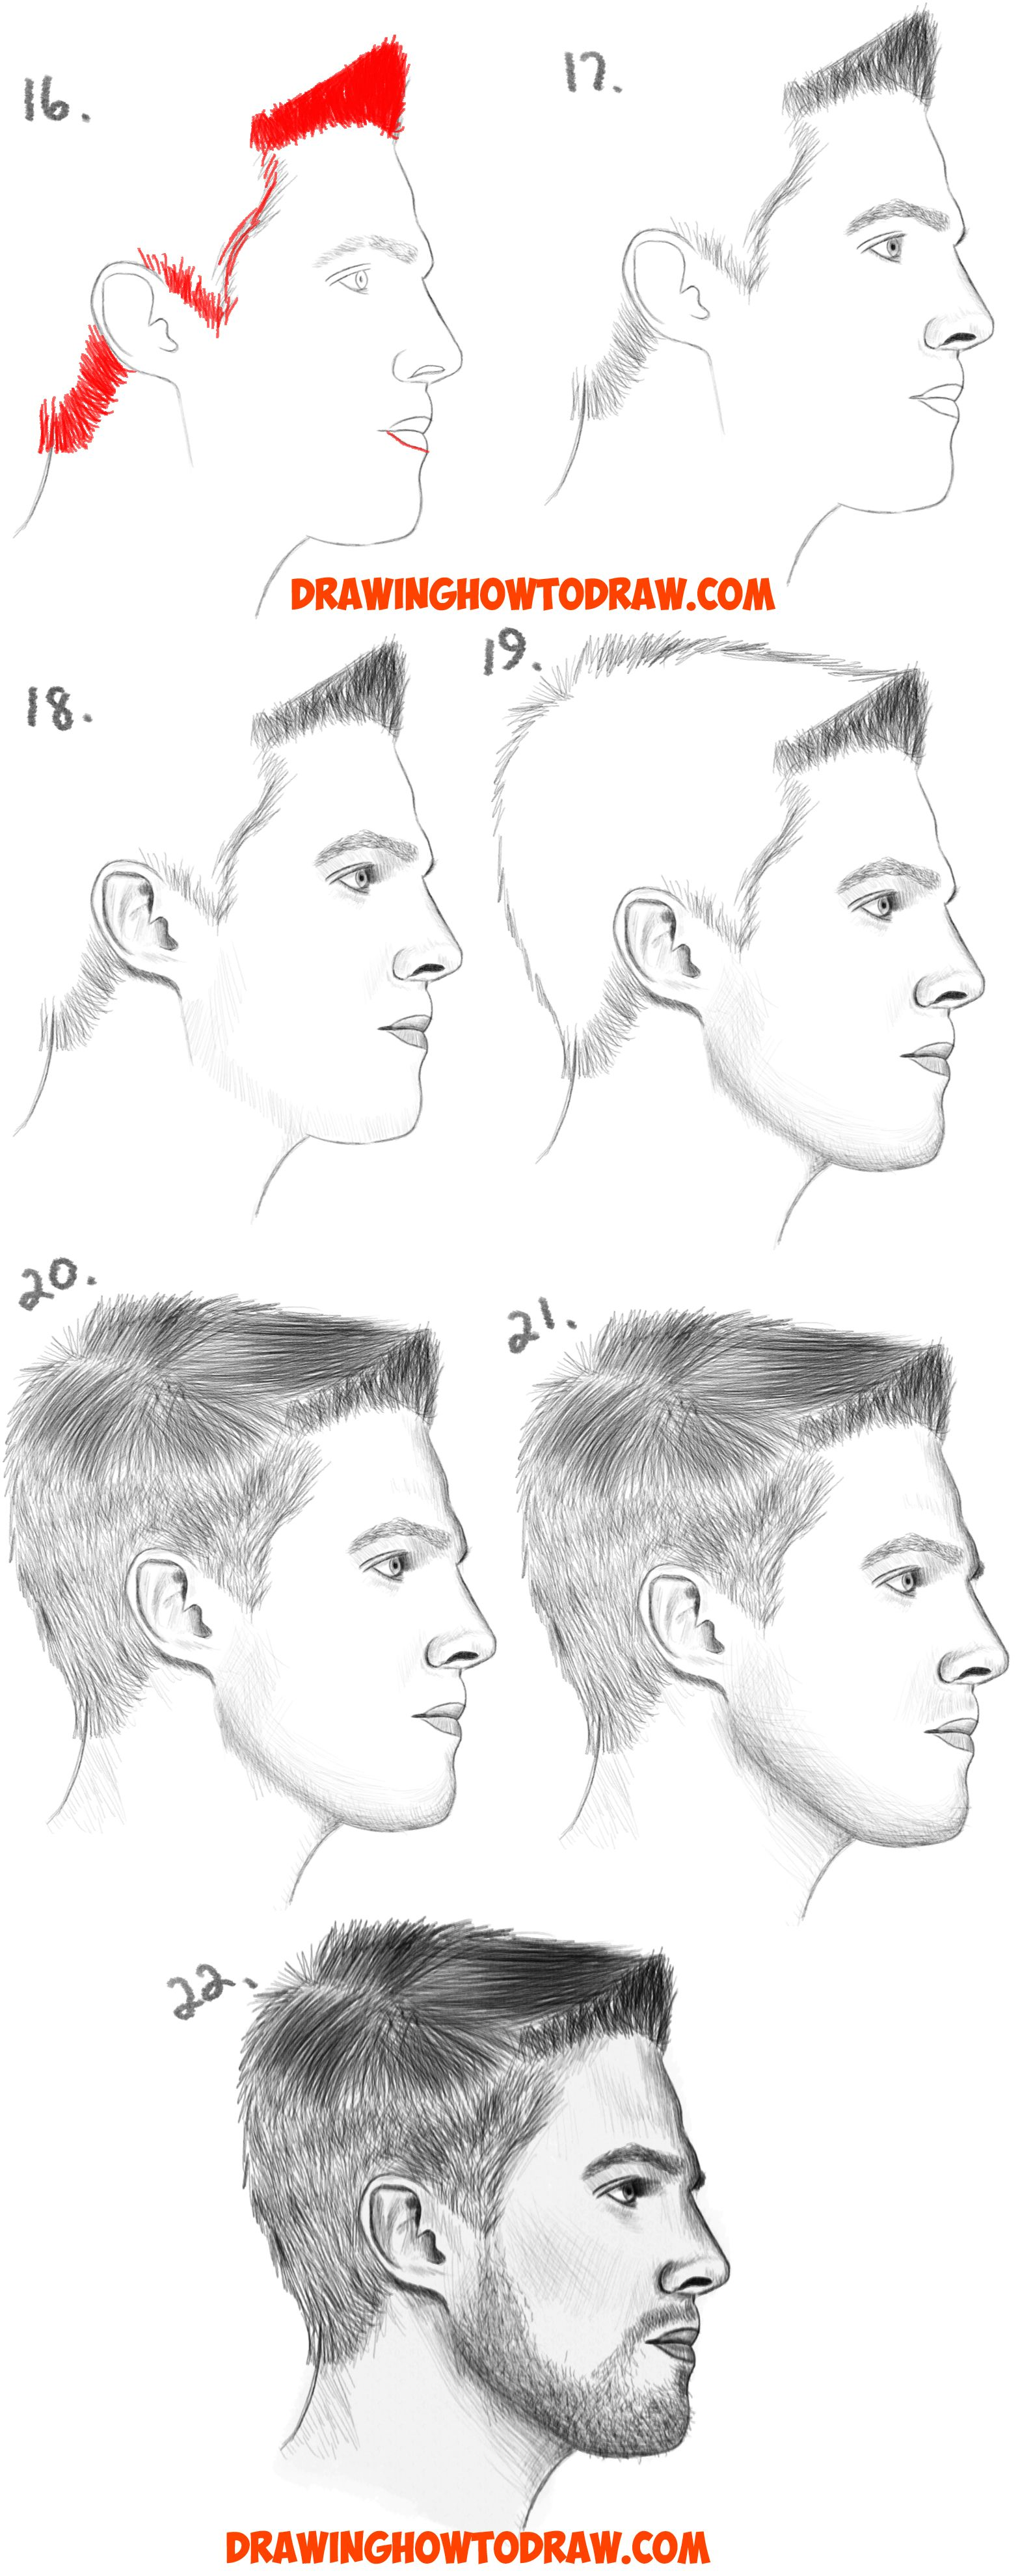 How To Draw A Face From The Side Profile View Male Man Easy Step By Step Drawing Tutorial For Beginners How To Draw Step By Step Drawing Tutorials Realistic